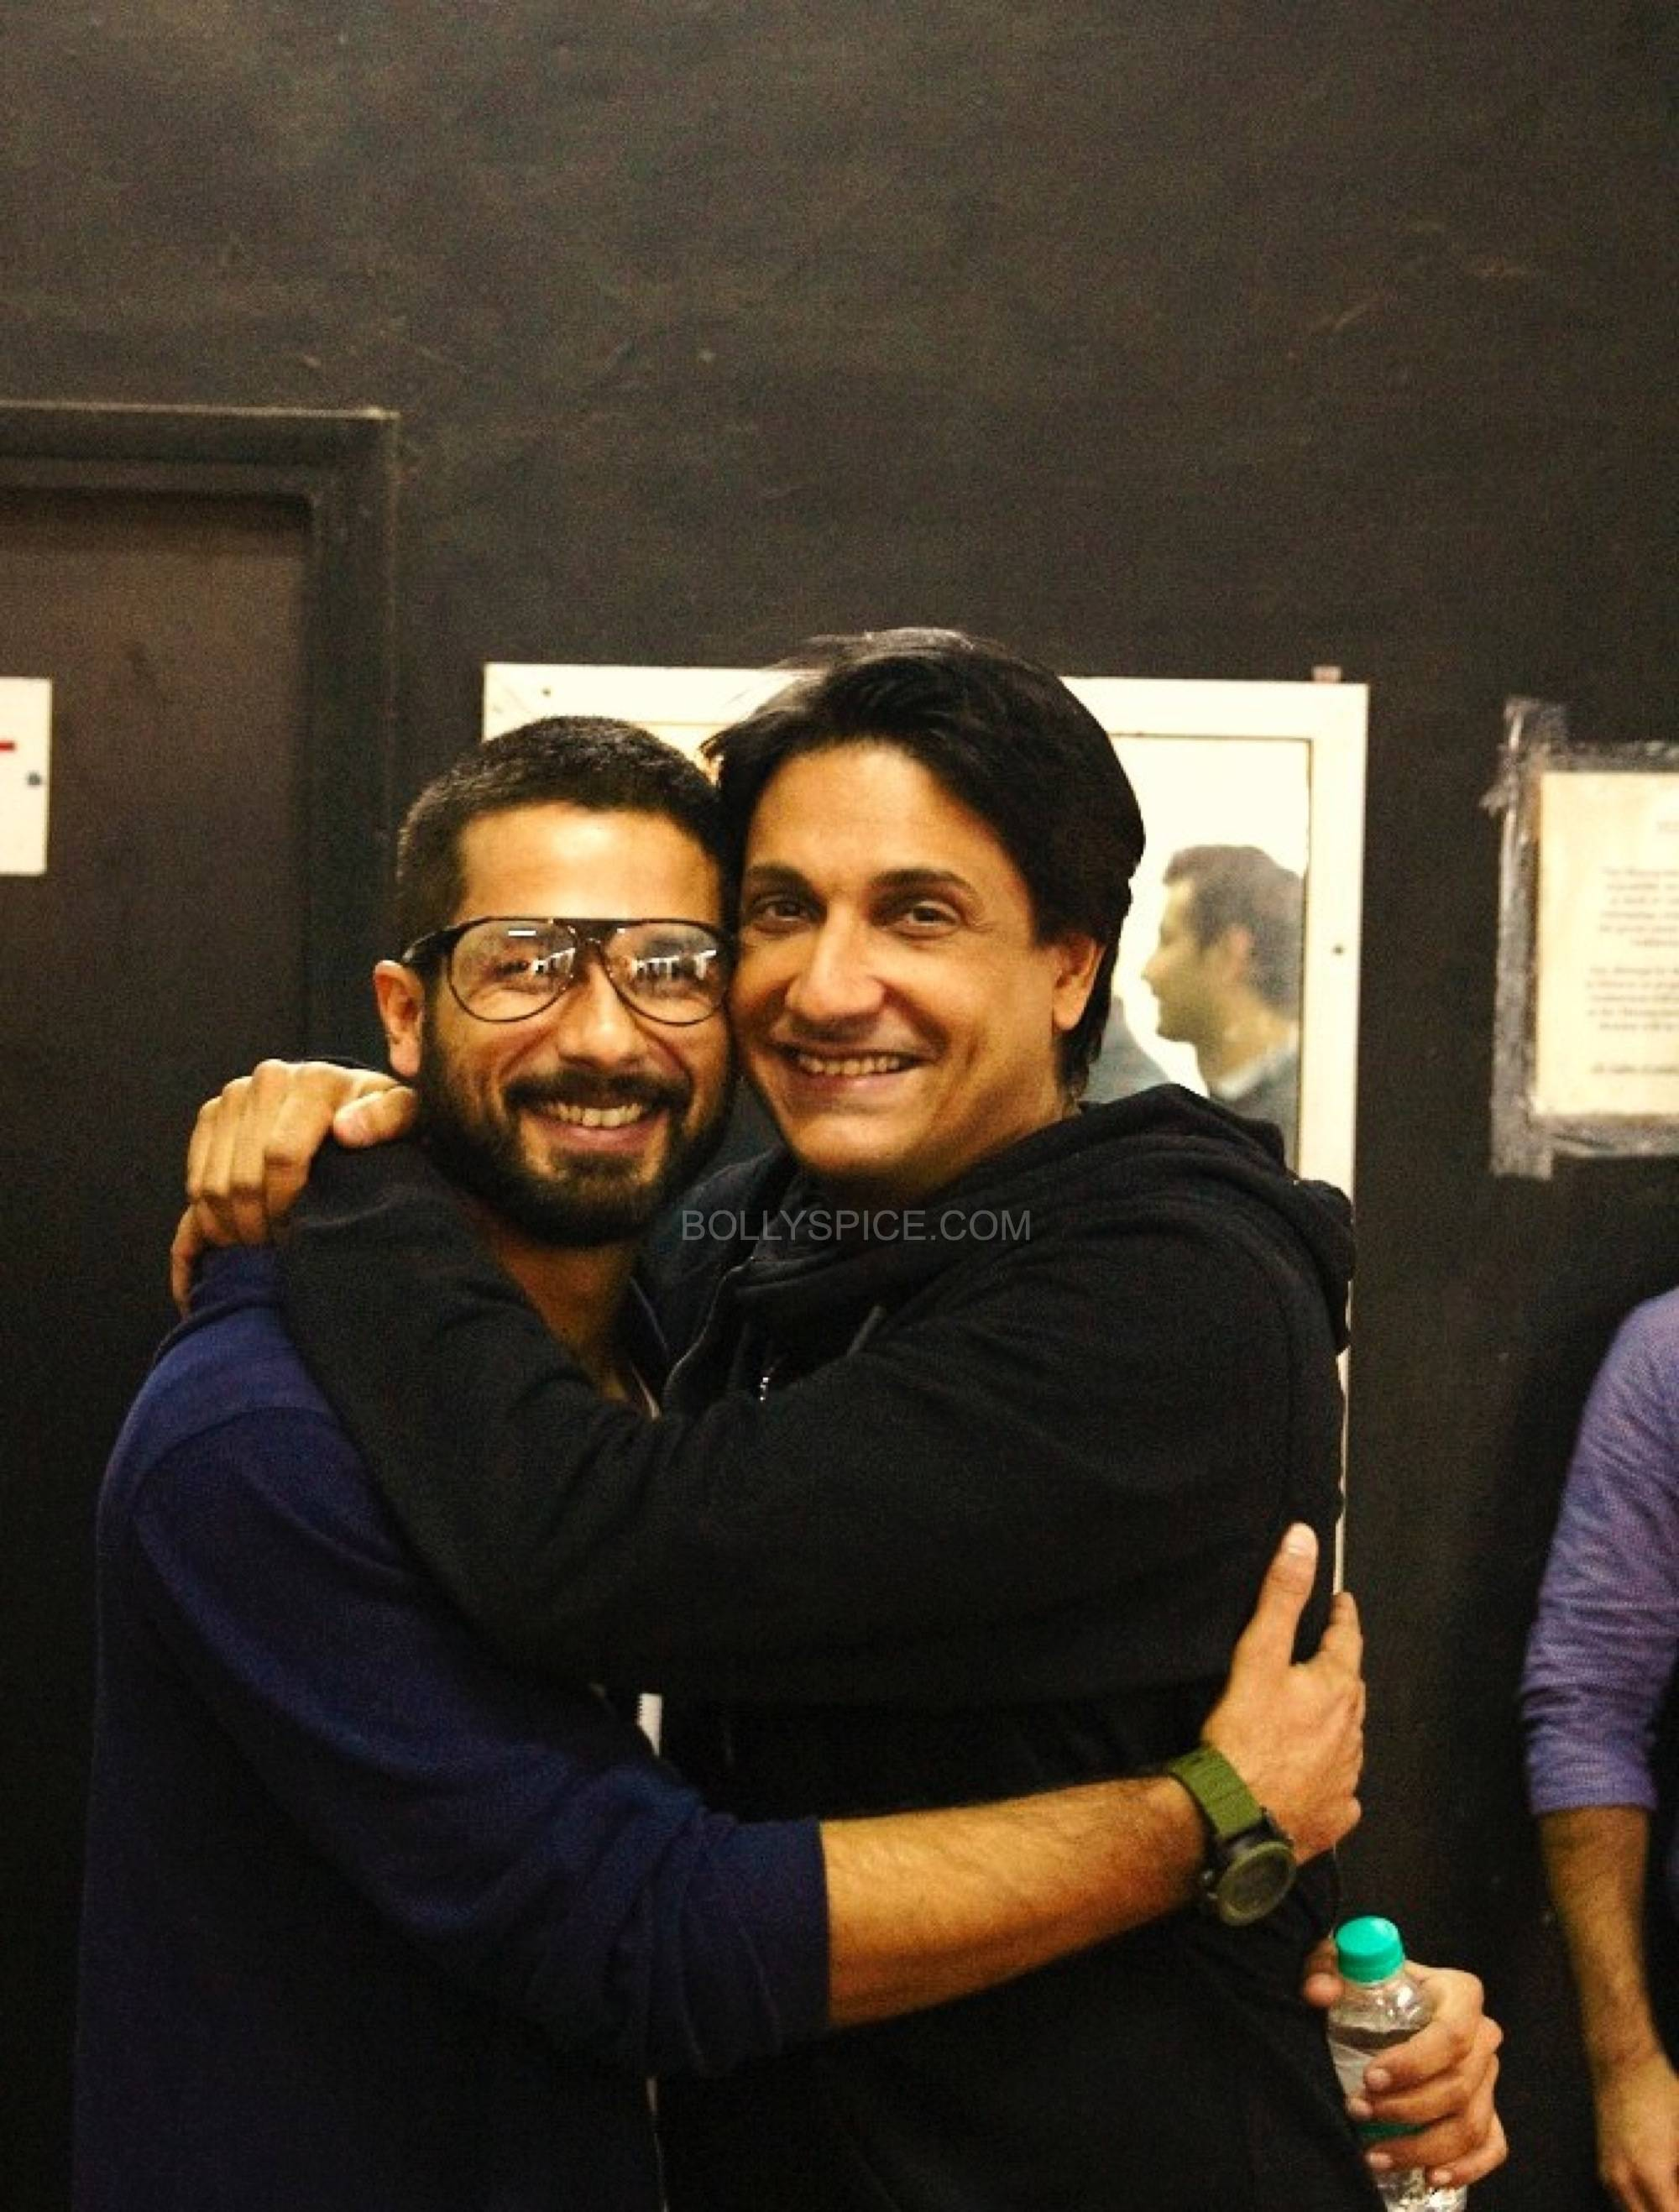 shahidshiamak5 Shahid and Shahids Brother Ishaan Named Shiamaks Most Promising Students